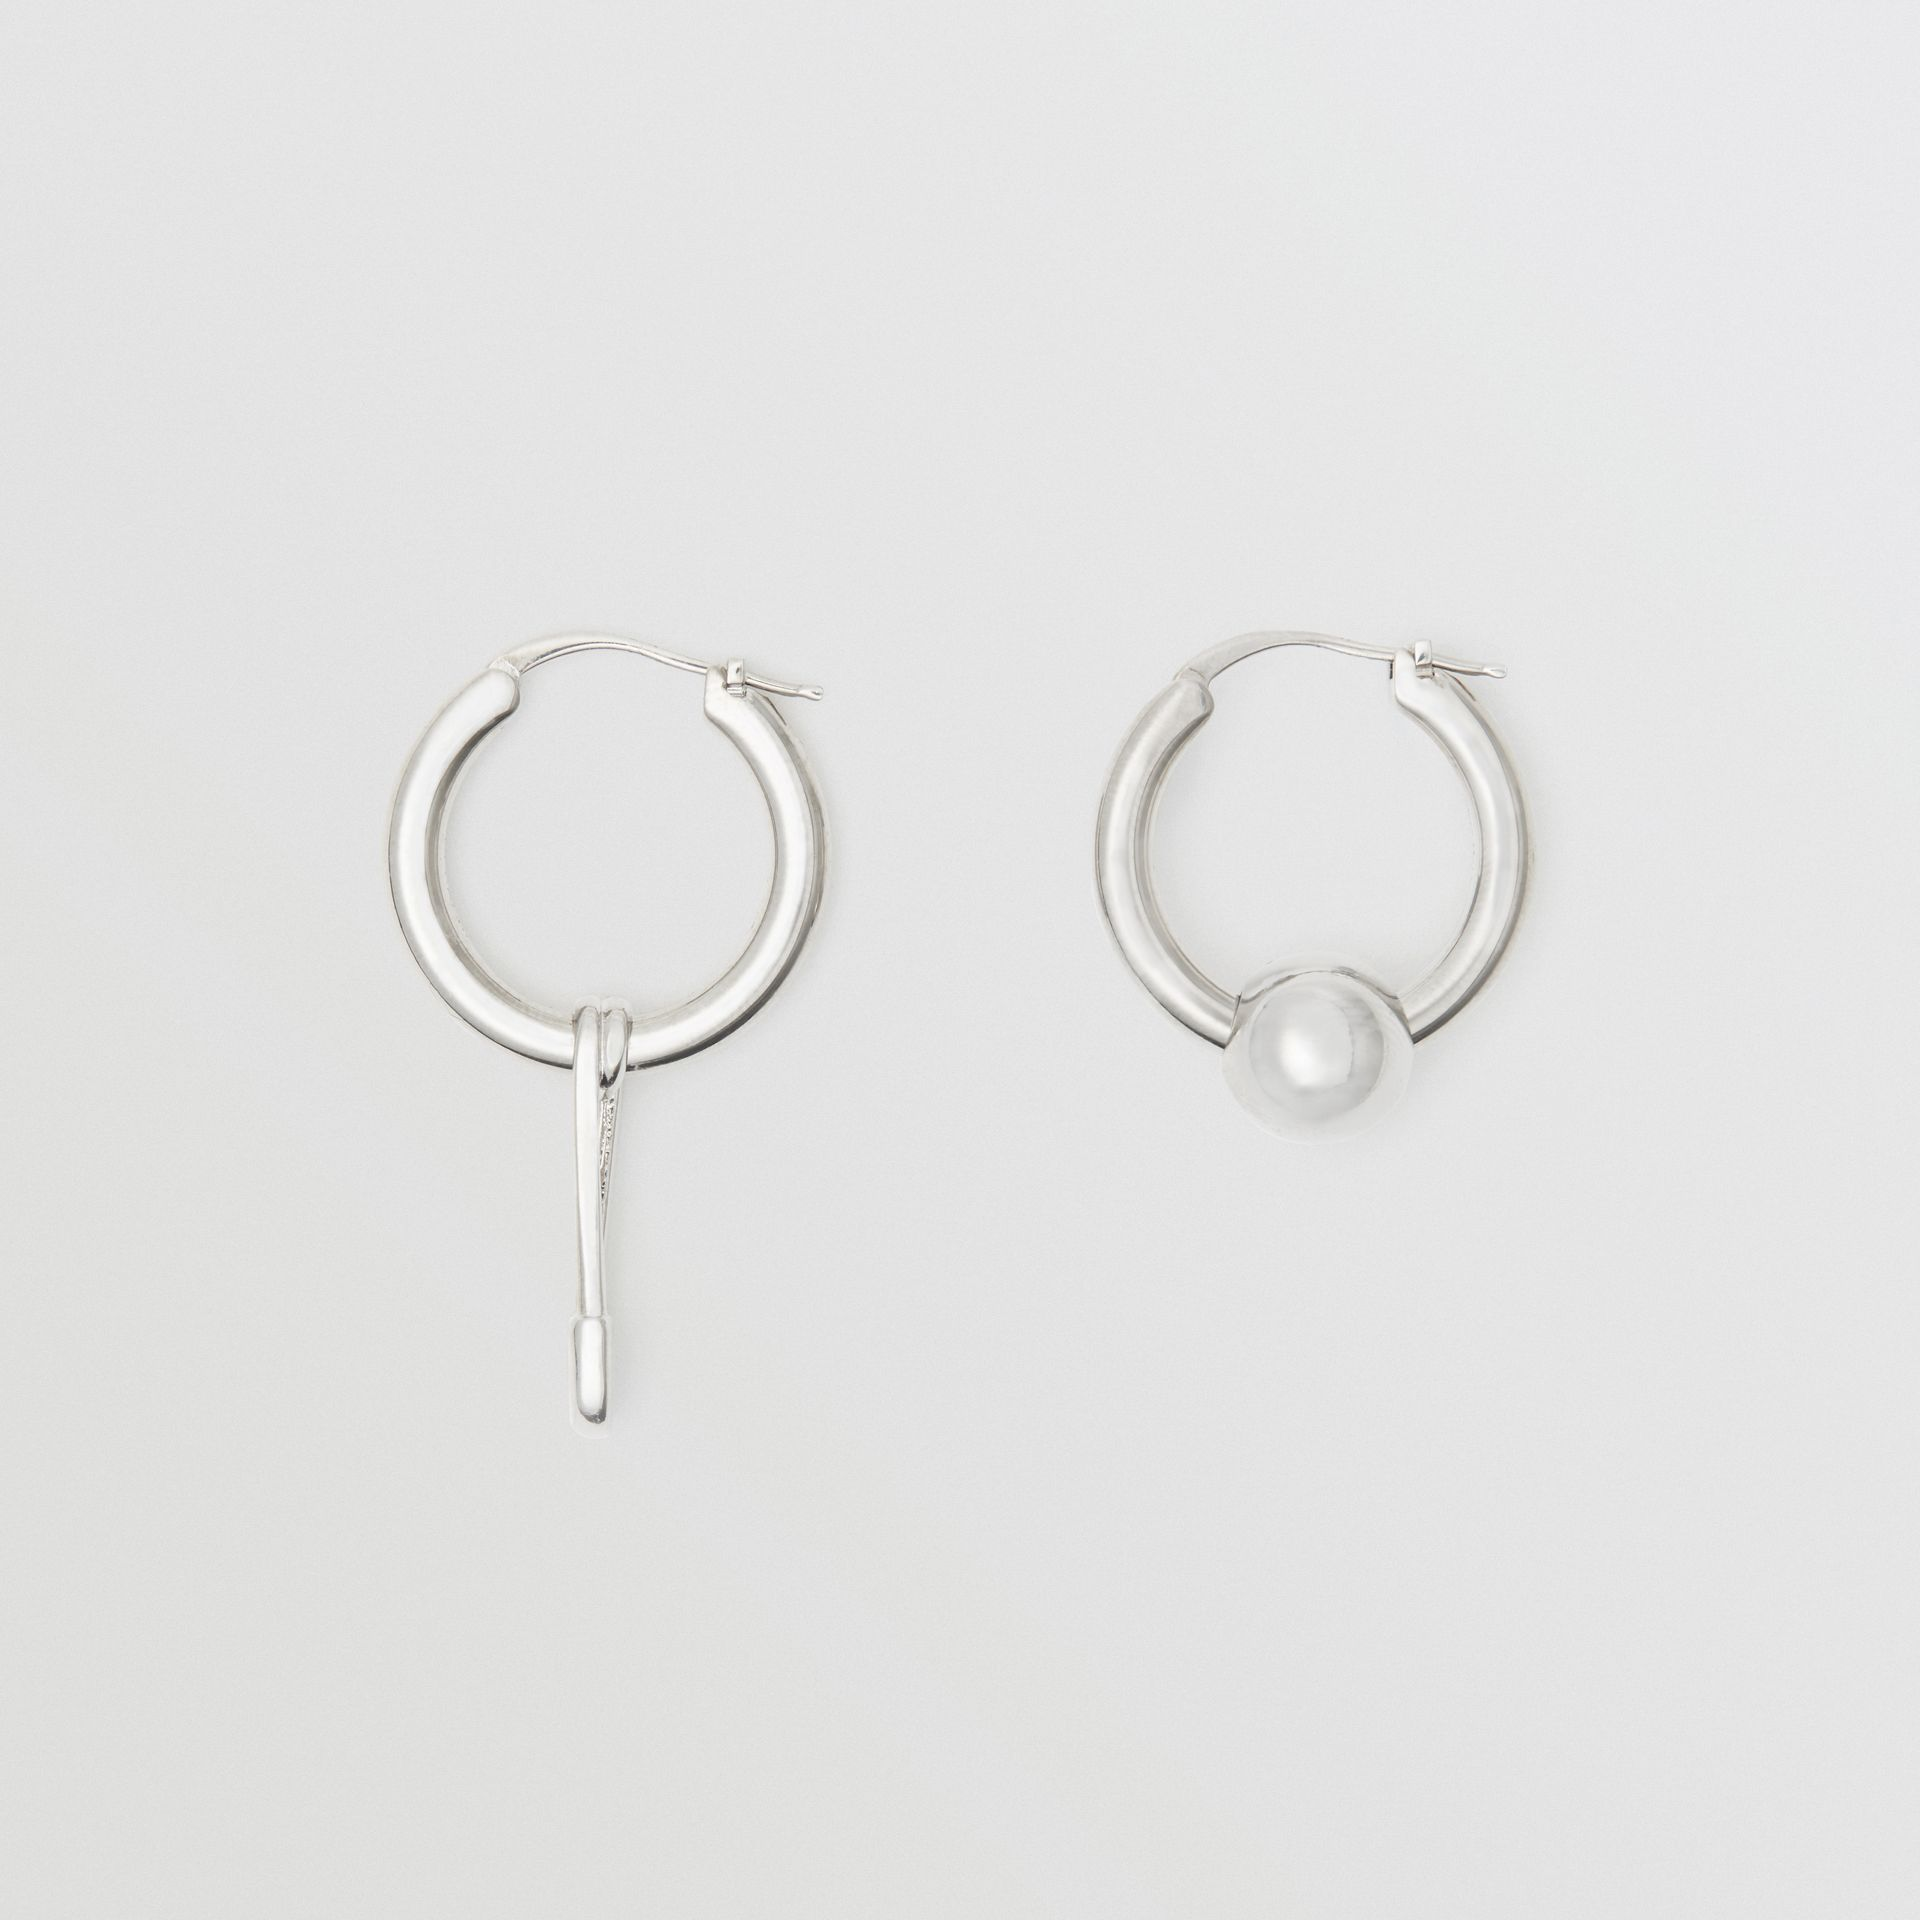 Kilt Pin and Charm Palladium-plated Hoop Earrings in Palladio - Women | Burberry United States - gallery image 0